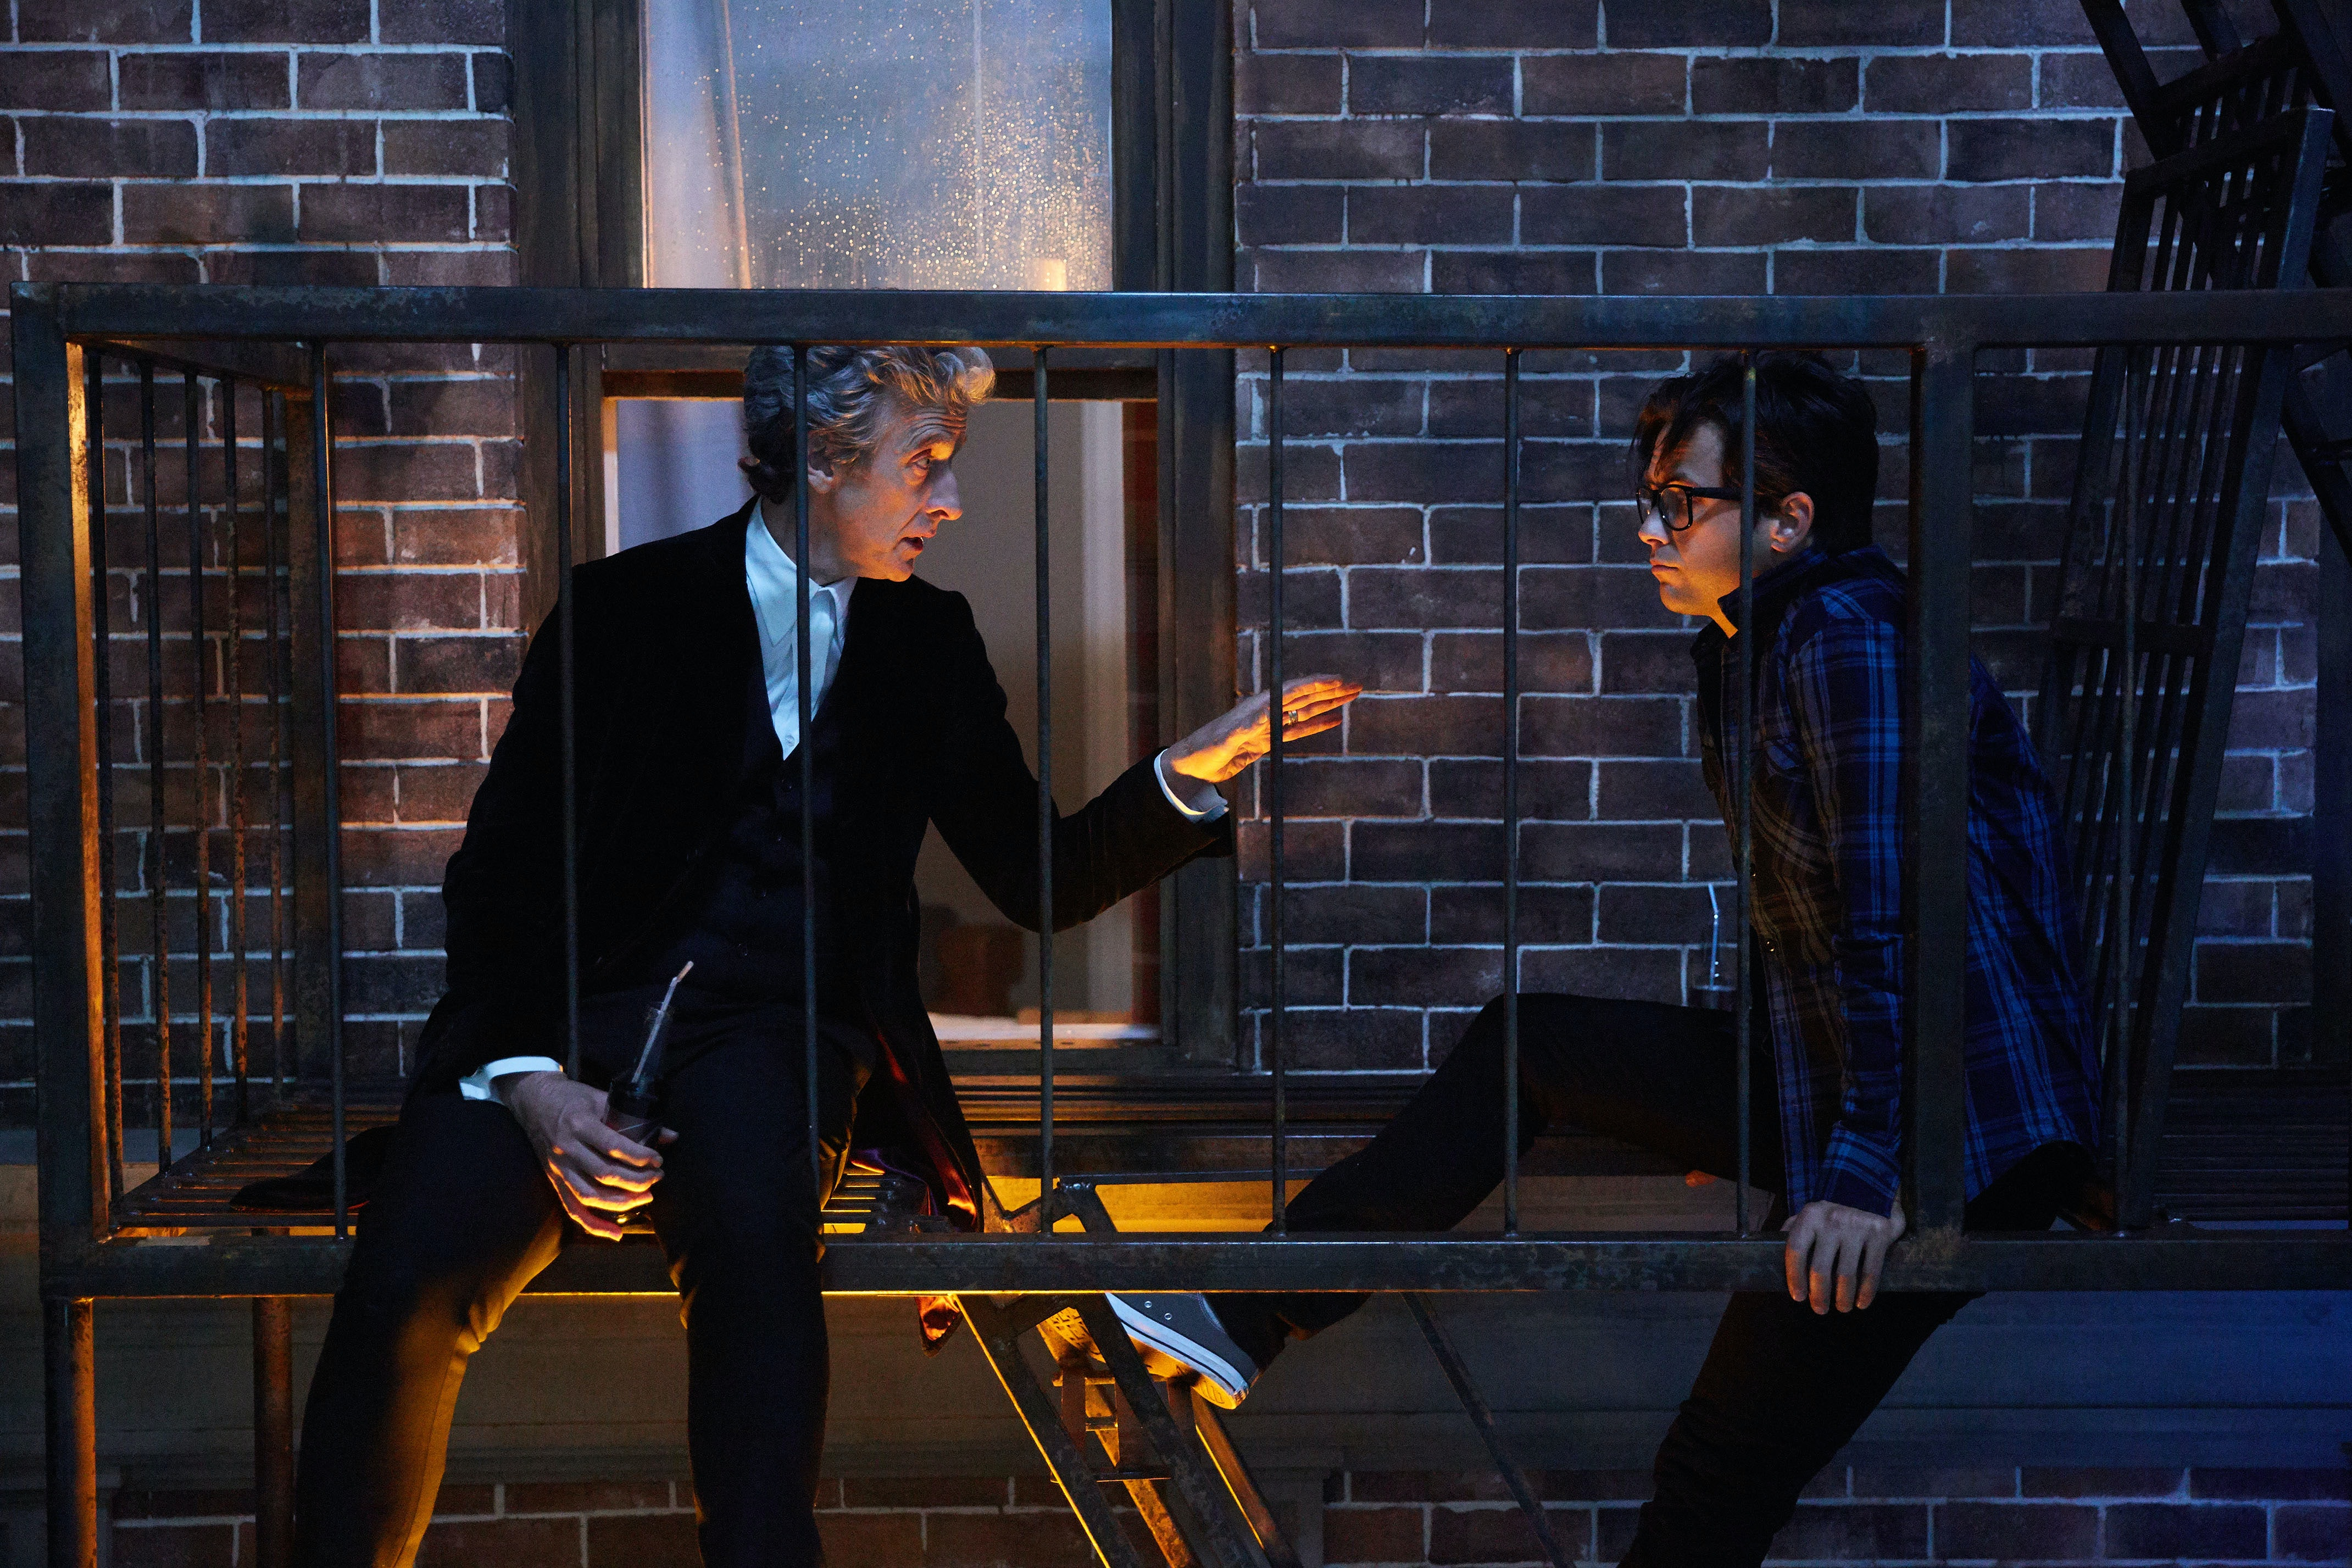 Doctor Who Season 10 Christmas Special.When Does Doctor Who Season 10 Premiere The Christmas